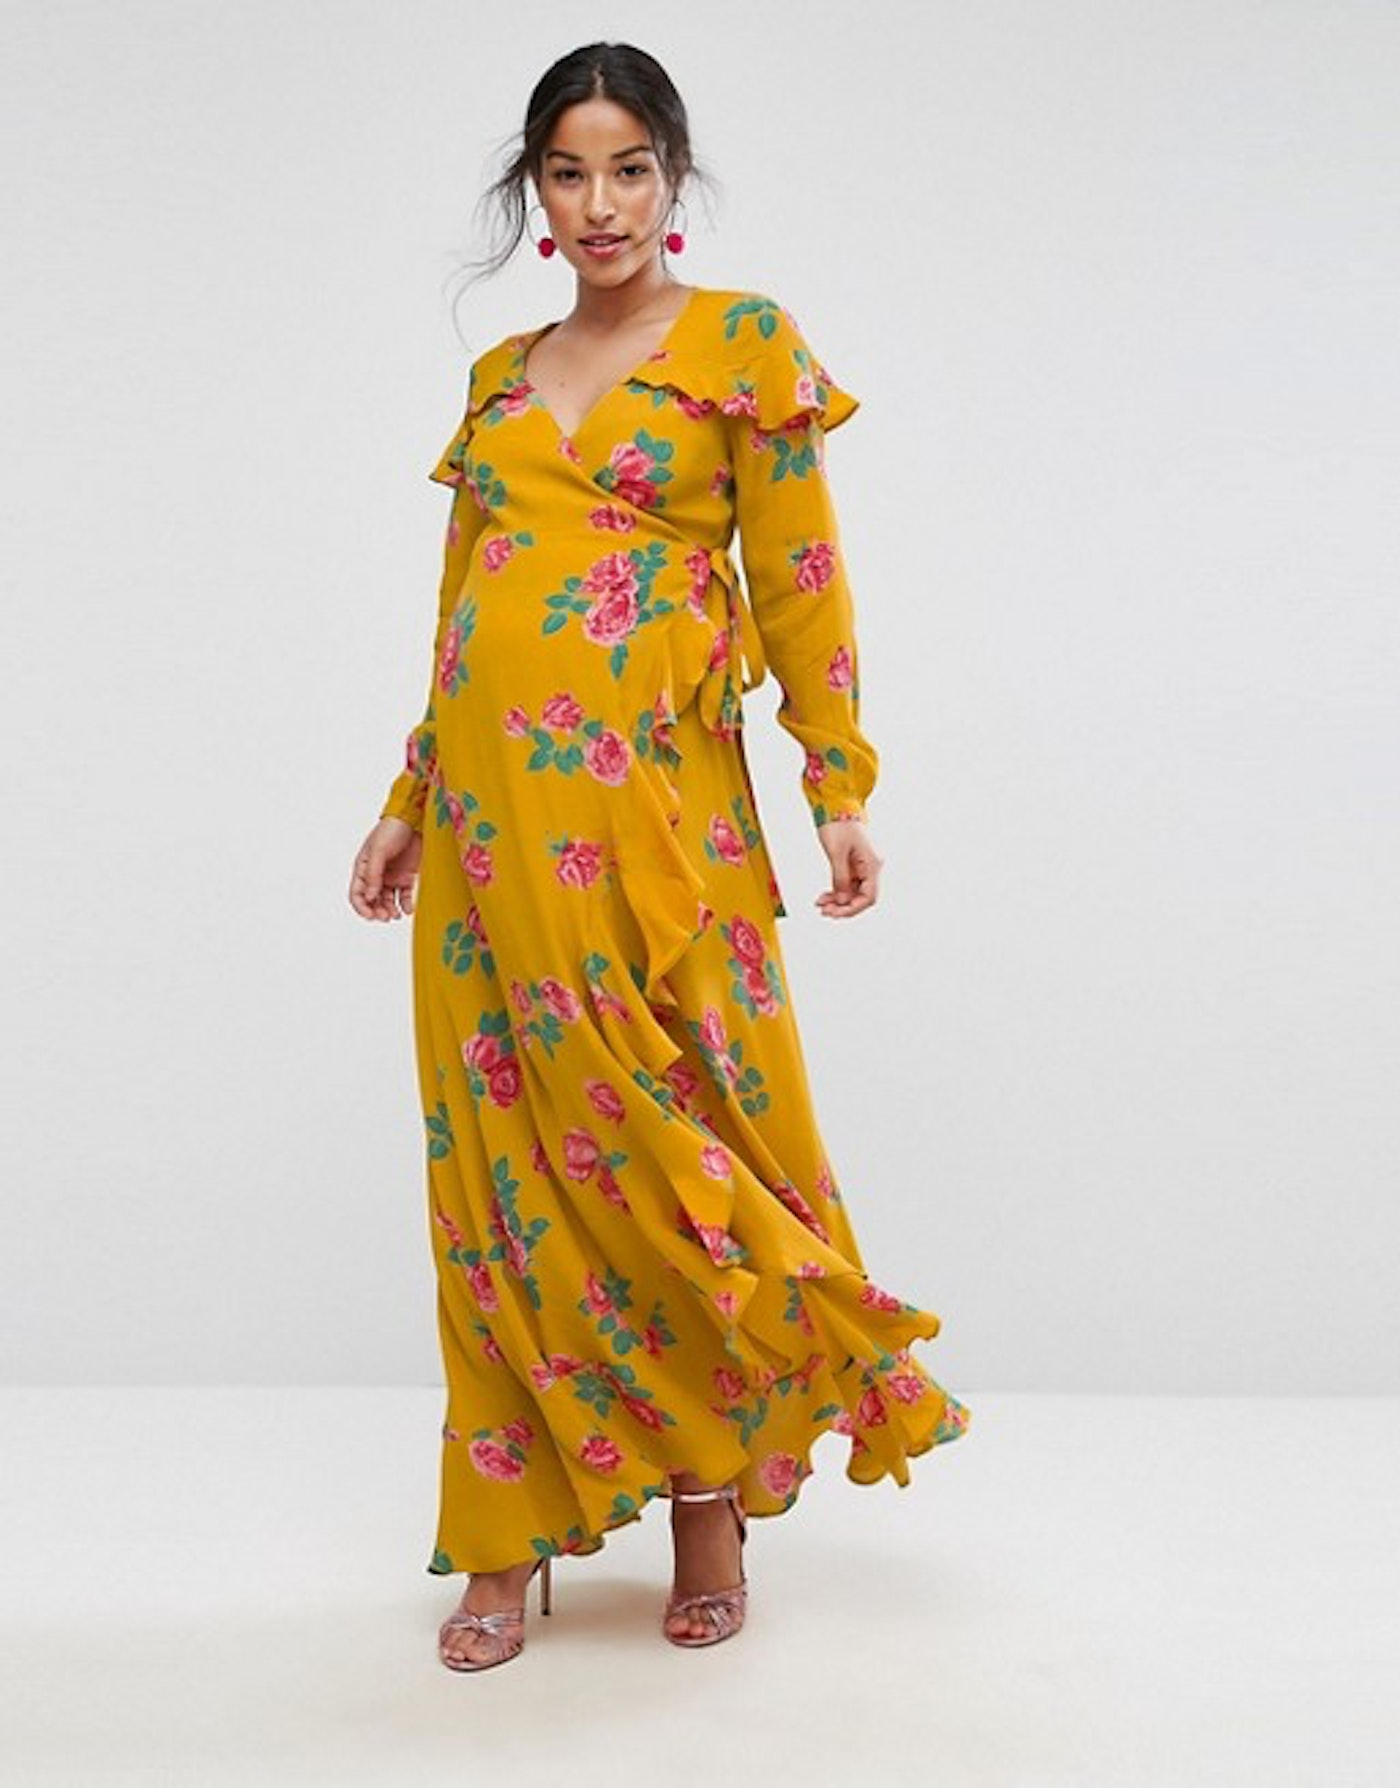 c88bfe7f3e9 Asos Maternity Long Sleeve Floral Maxi Dress - Data Dynamic AG